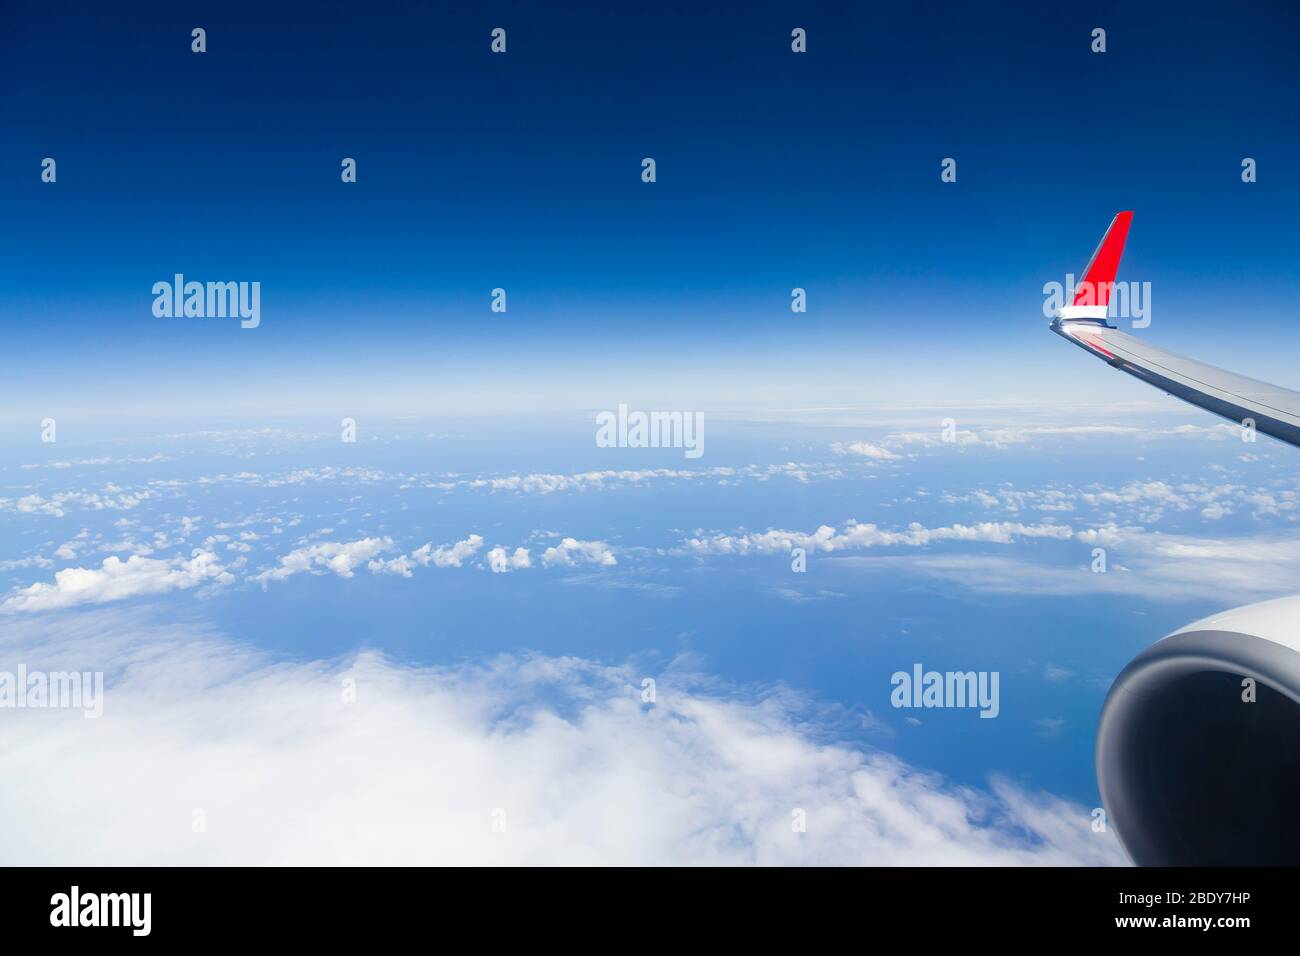 View from window of airliner wing and engine above clouds and Atlantic ocean, with blue sky and horizon. Depicts airline business travel Stock Photo